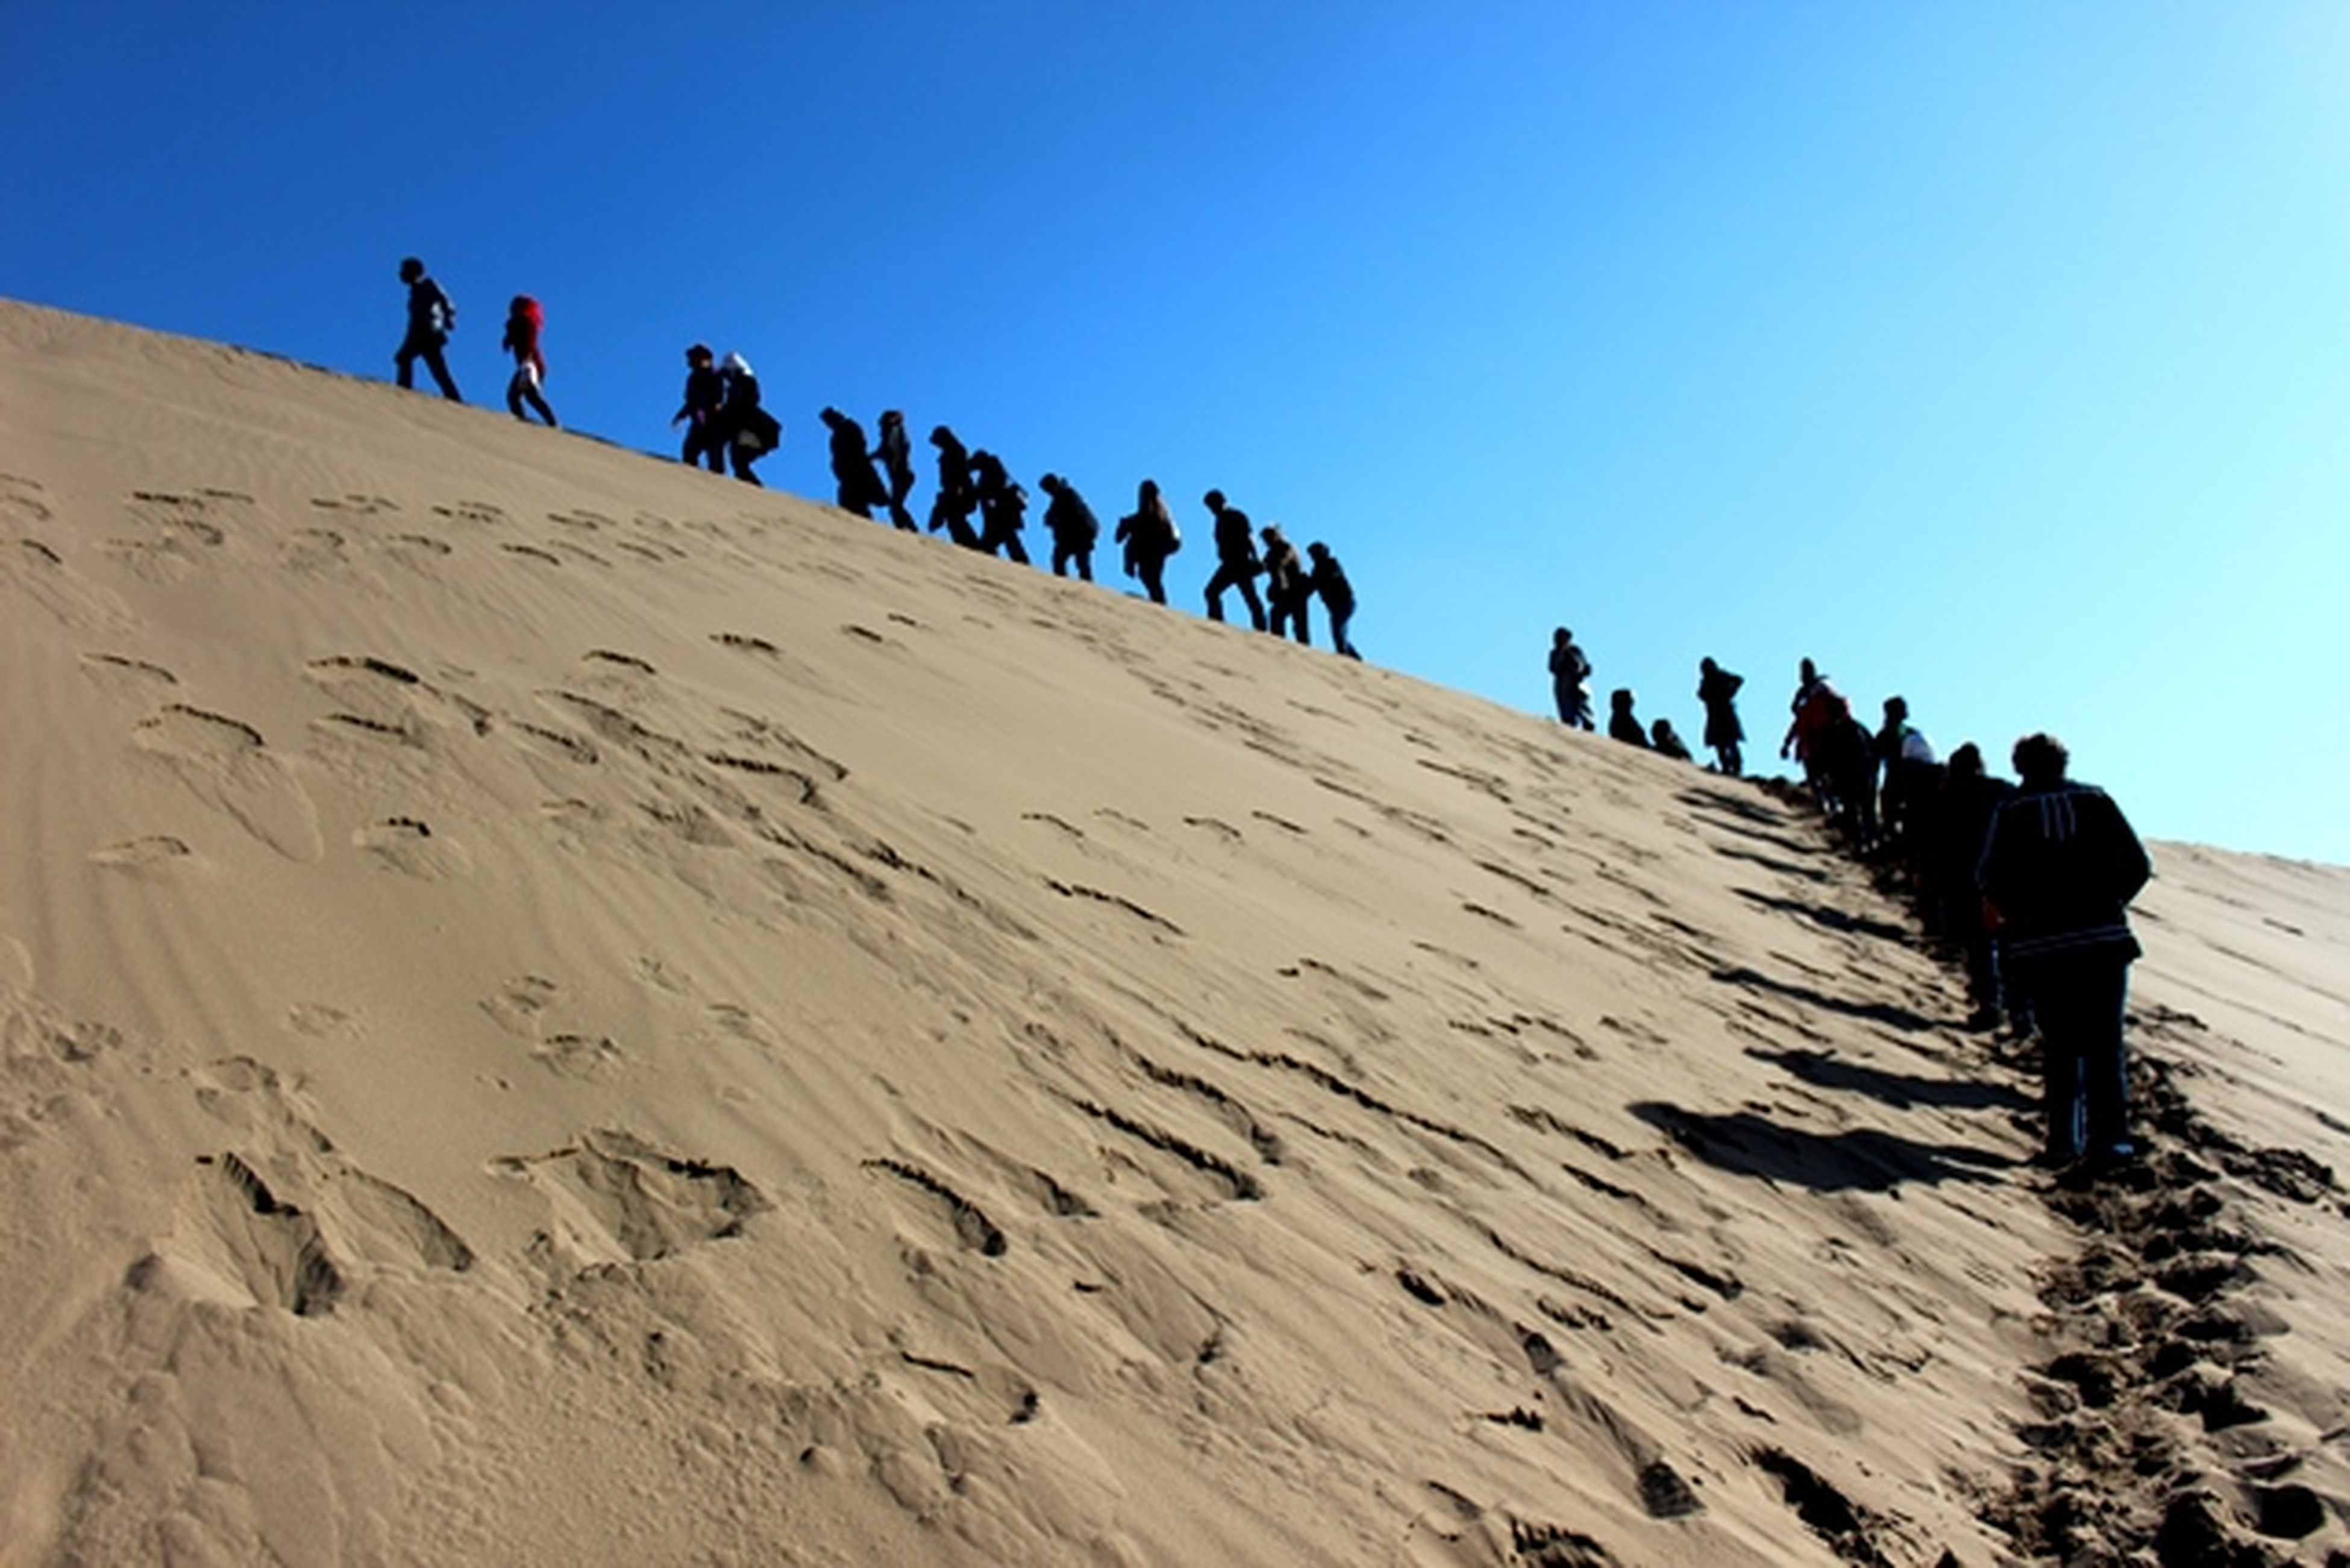 clear sky, large group of people, sand, men, copy space, bird, sunlight, blue, animal themes, beach, desert, lifestyles, person, leisure activity, low angle view, day, flock of birds, togetherness